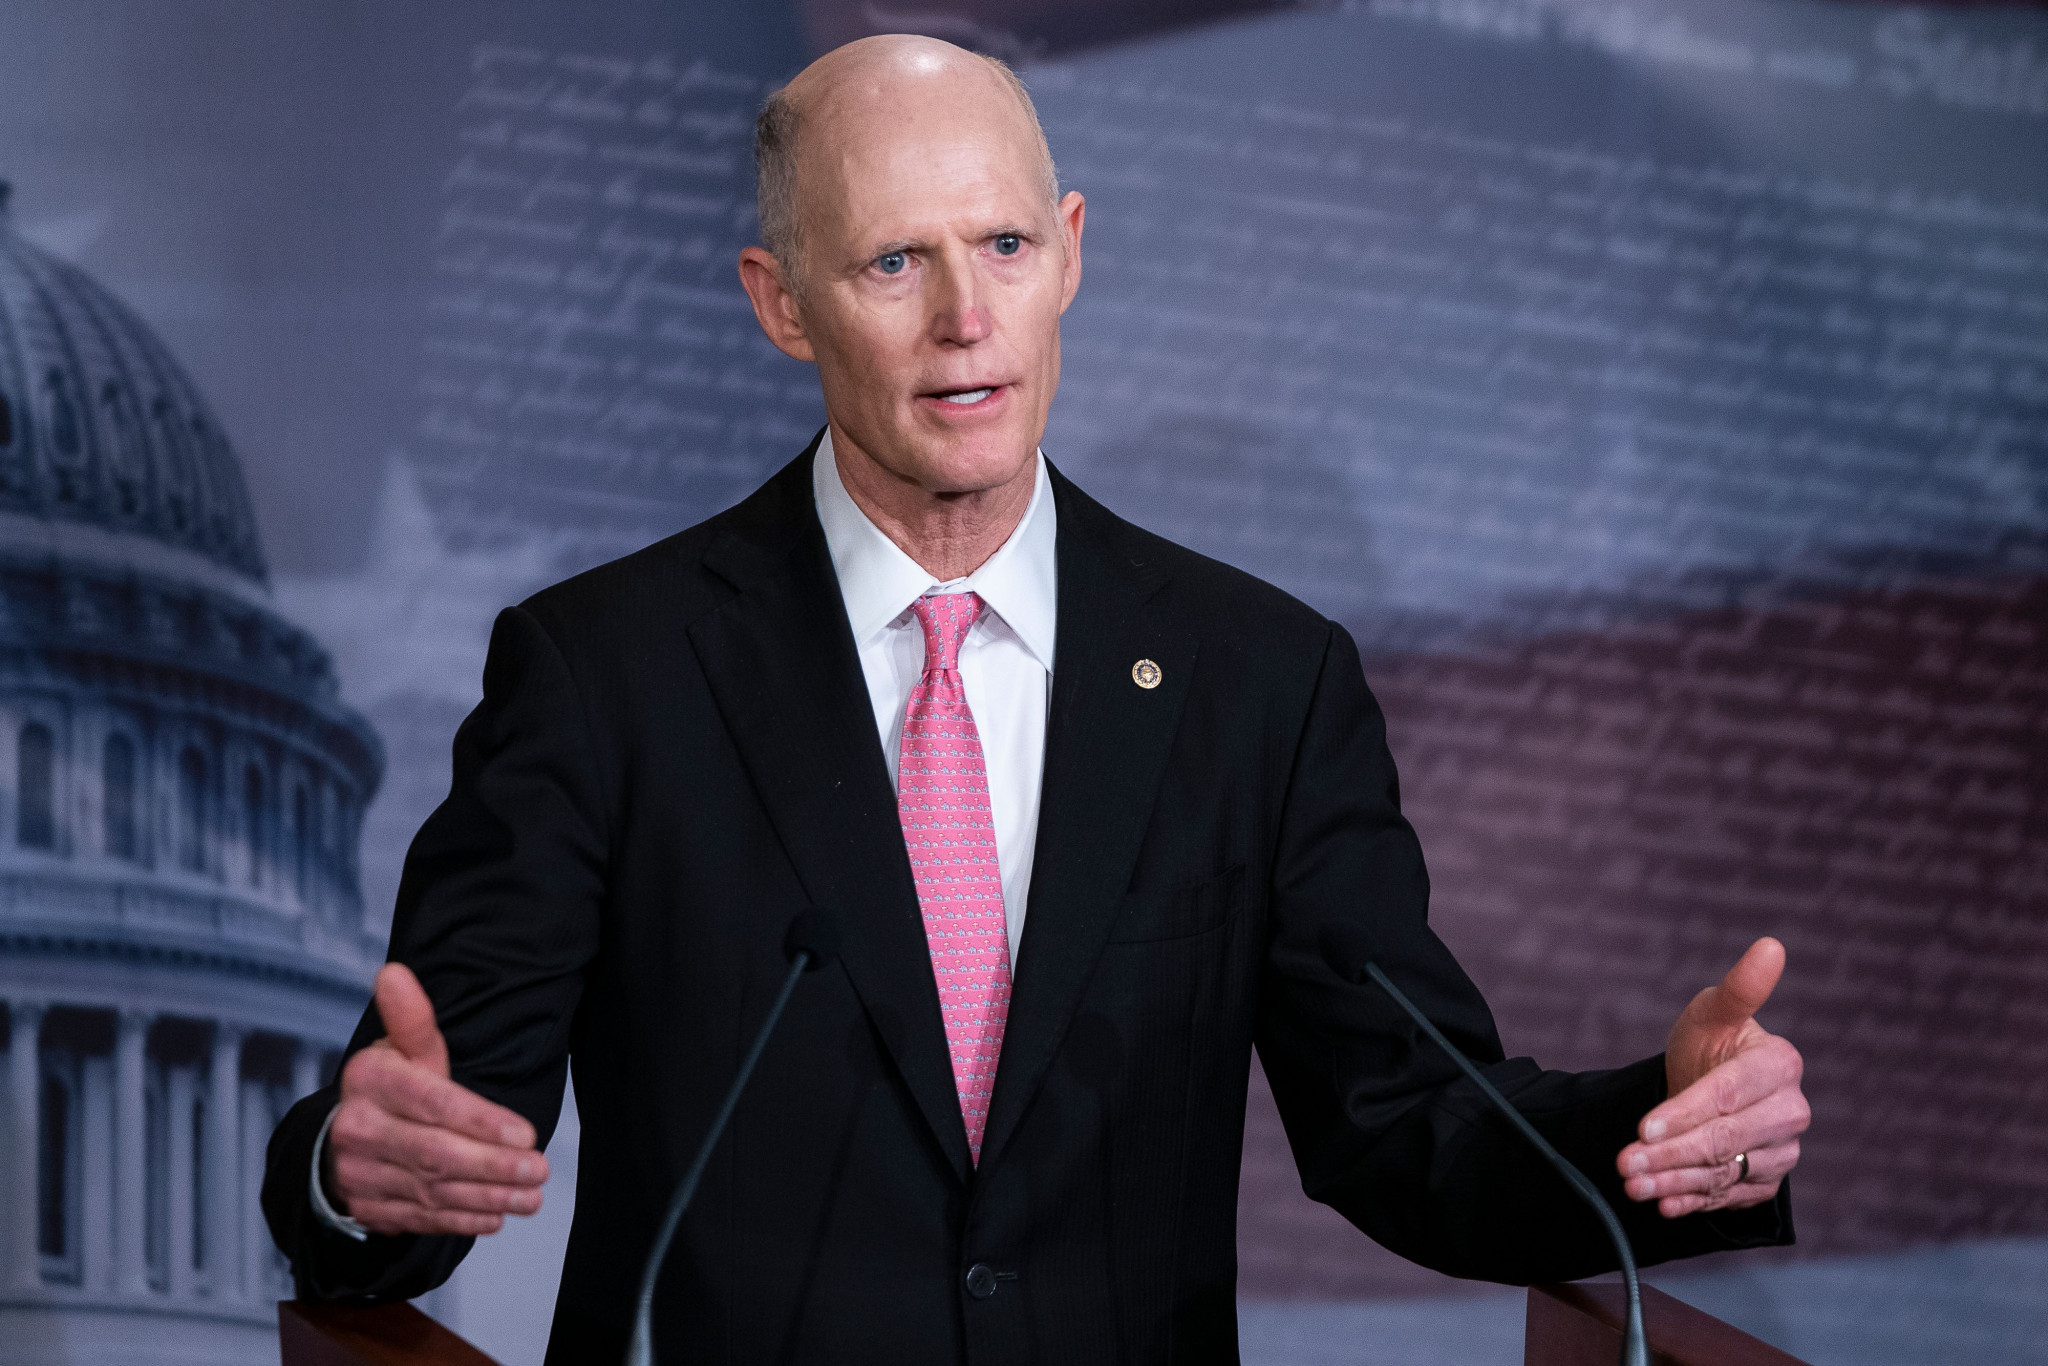 US Senator Rick Scott requests meeting with IOC President to discuss Beijing 2022 concerns